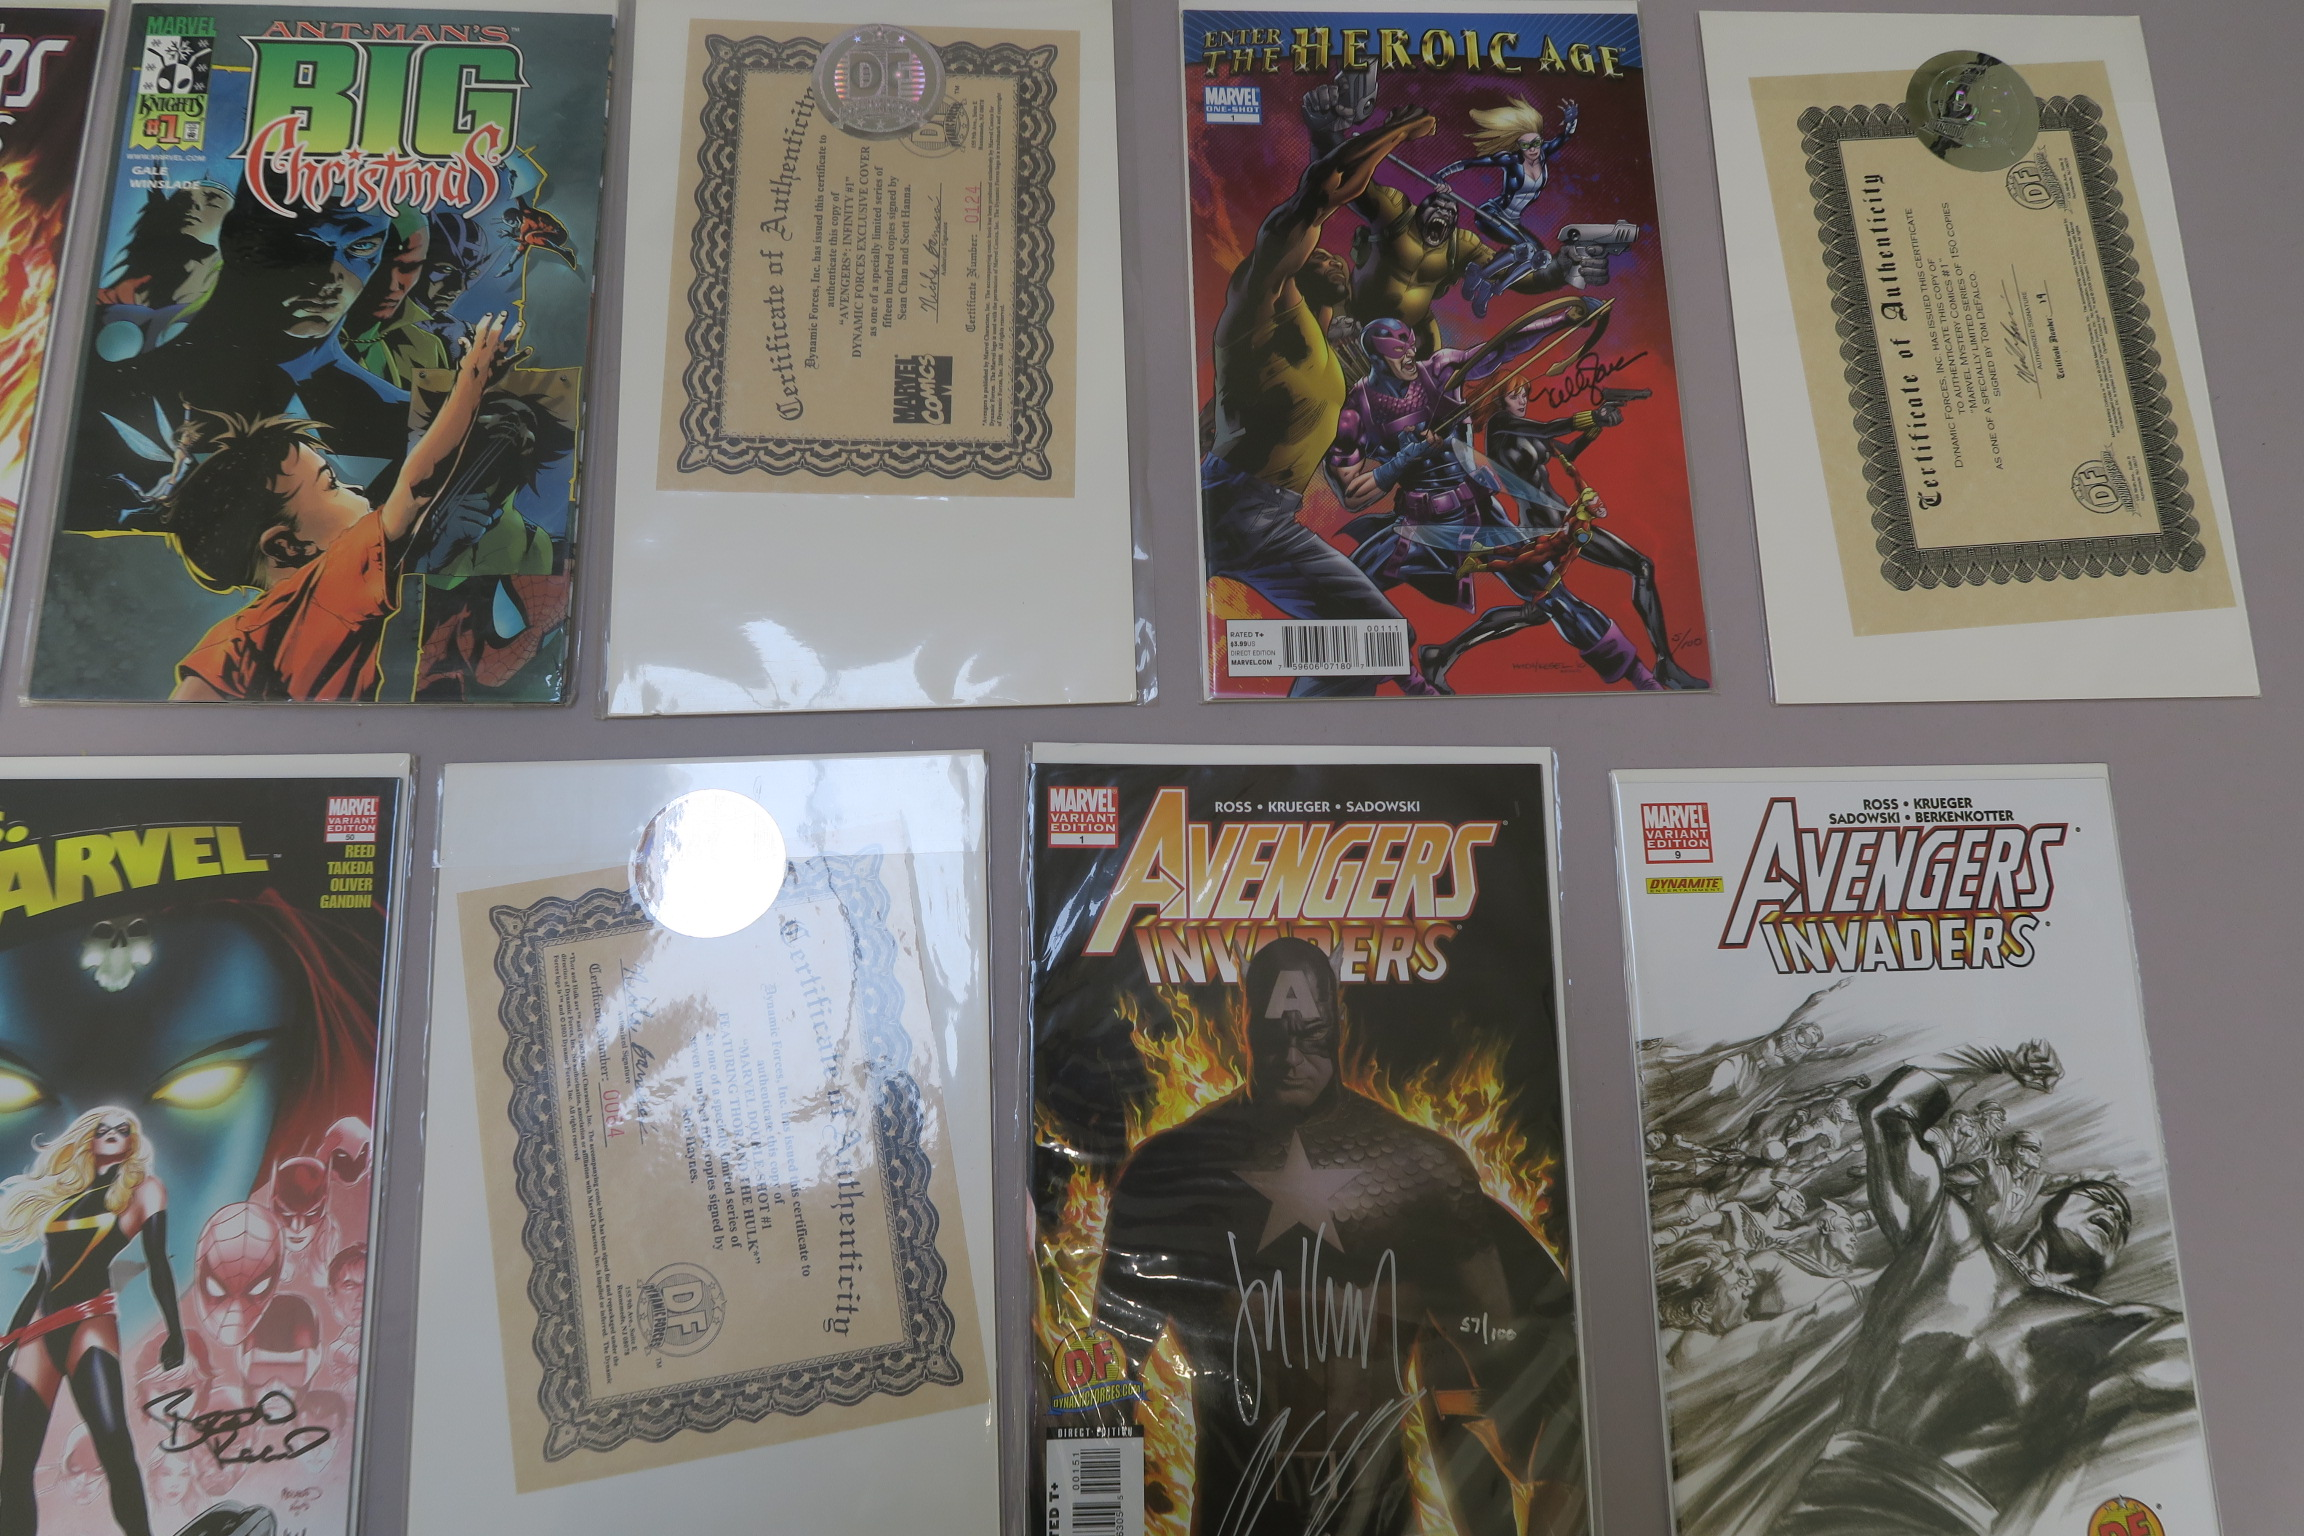 Lot 9 - Avengers Marvel signed comics including Avengers/Invaders #1 variant signed by Alex Ross and Jim